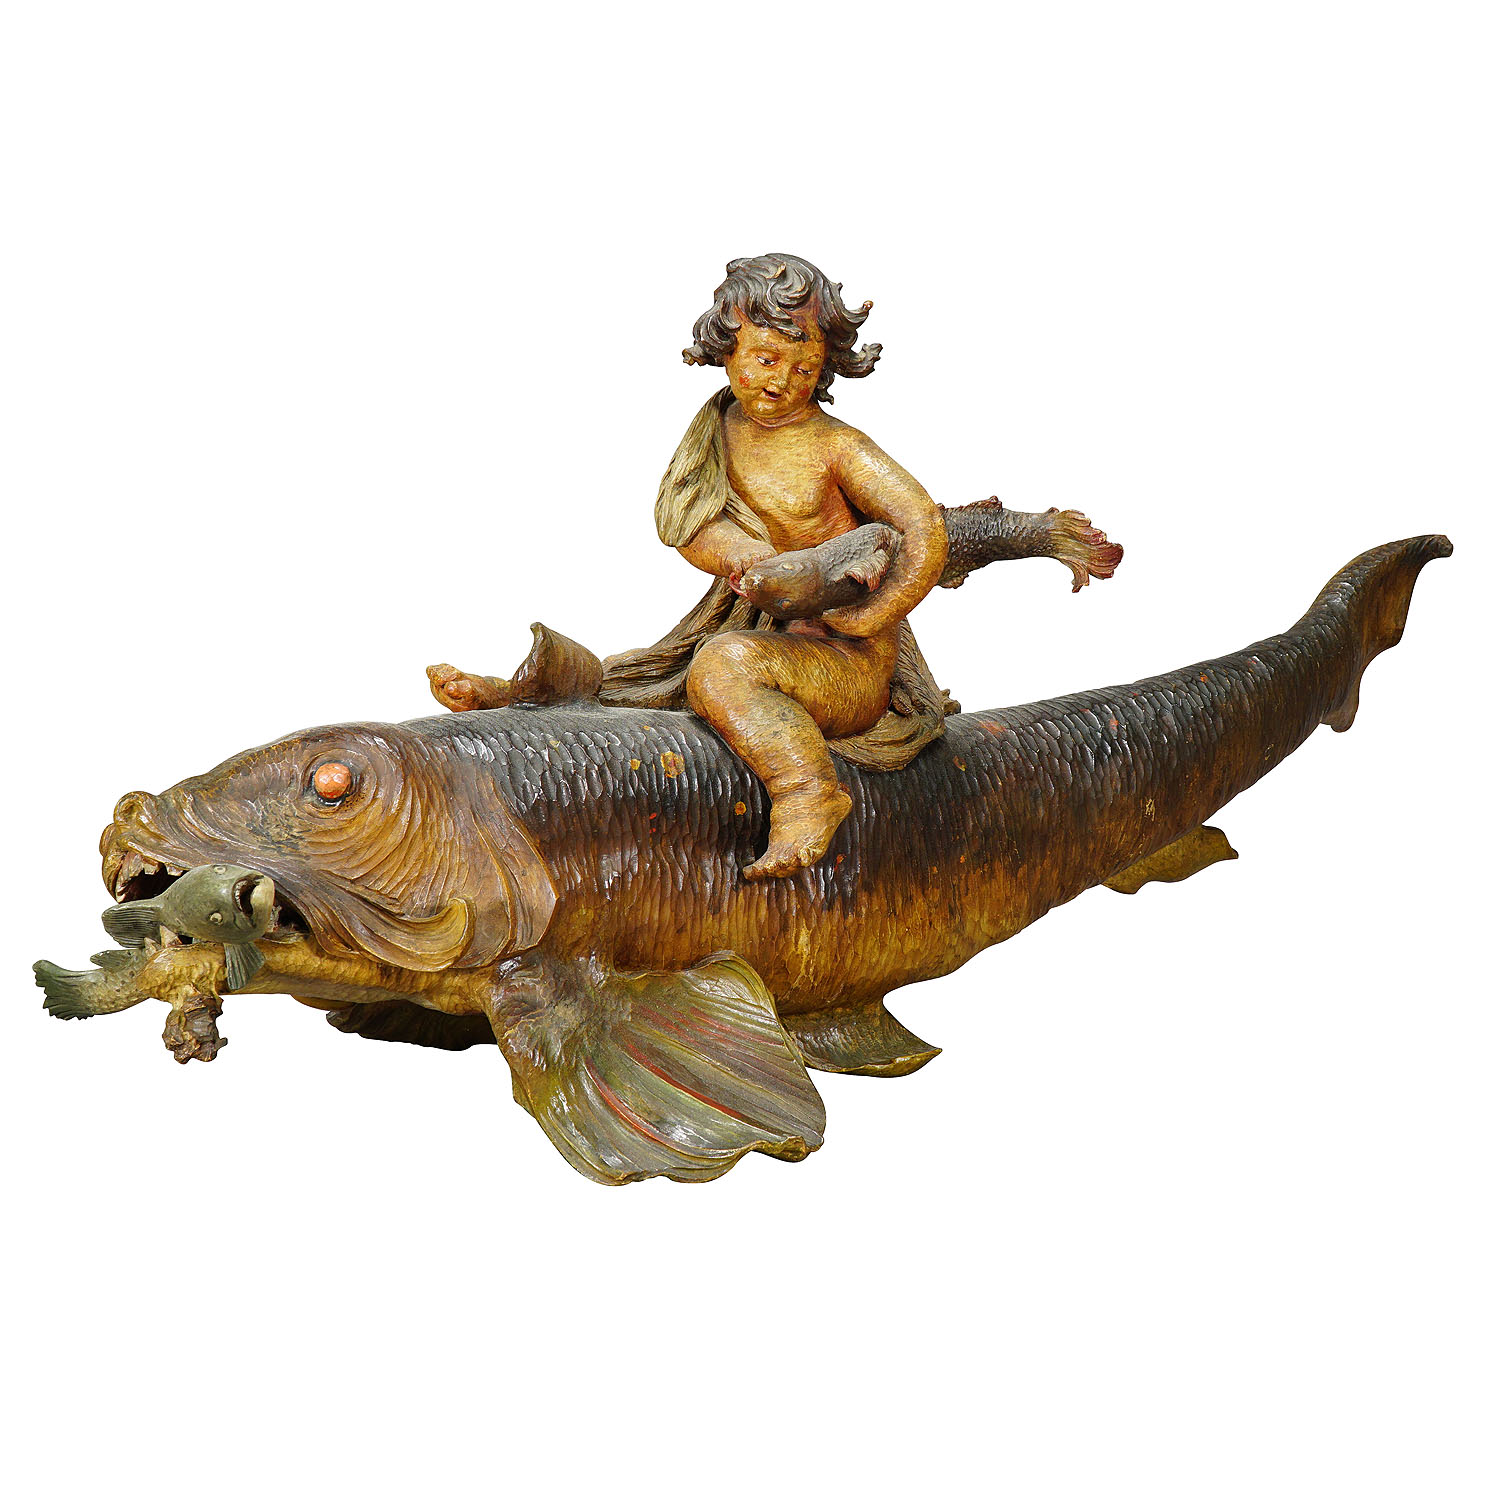 Outstanding wooden sculpture of a danube salmon, Austria ca. 1900